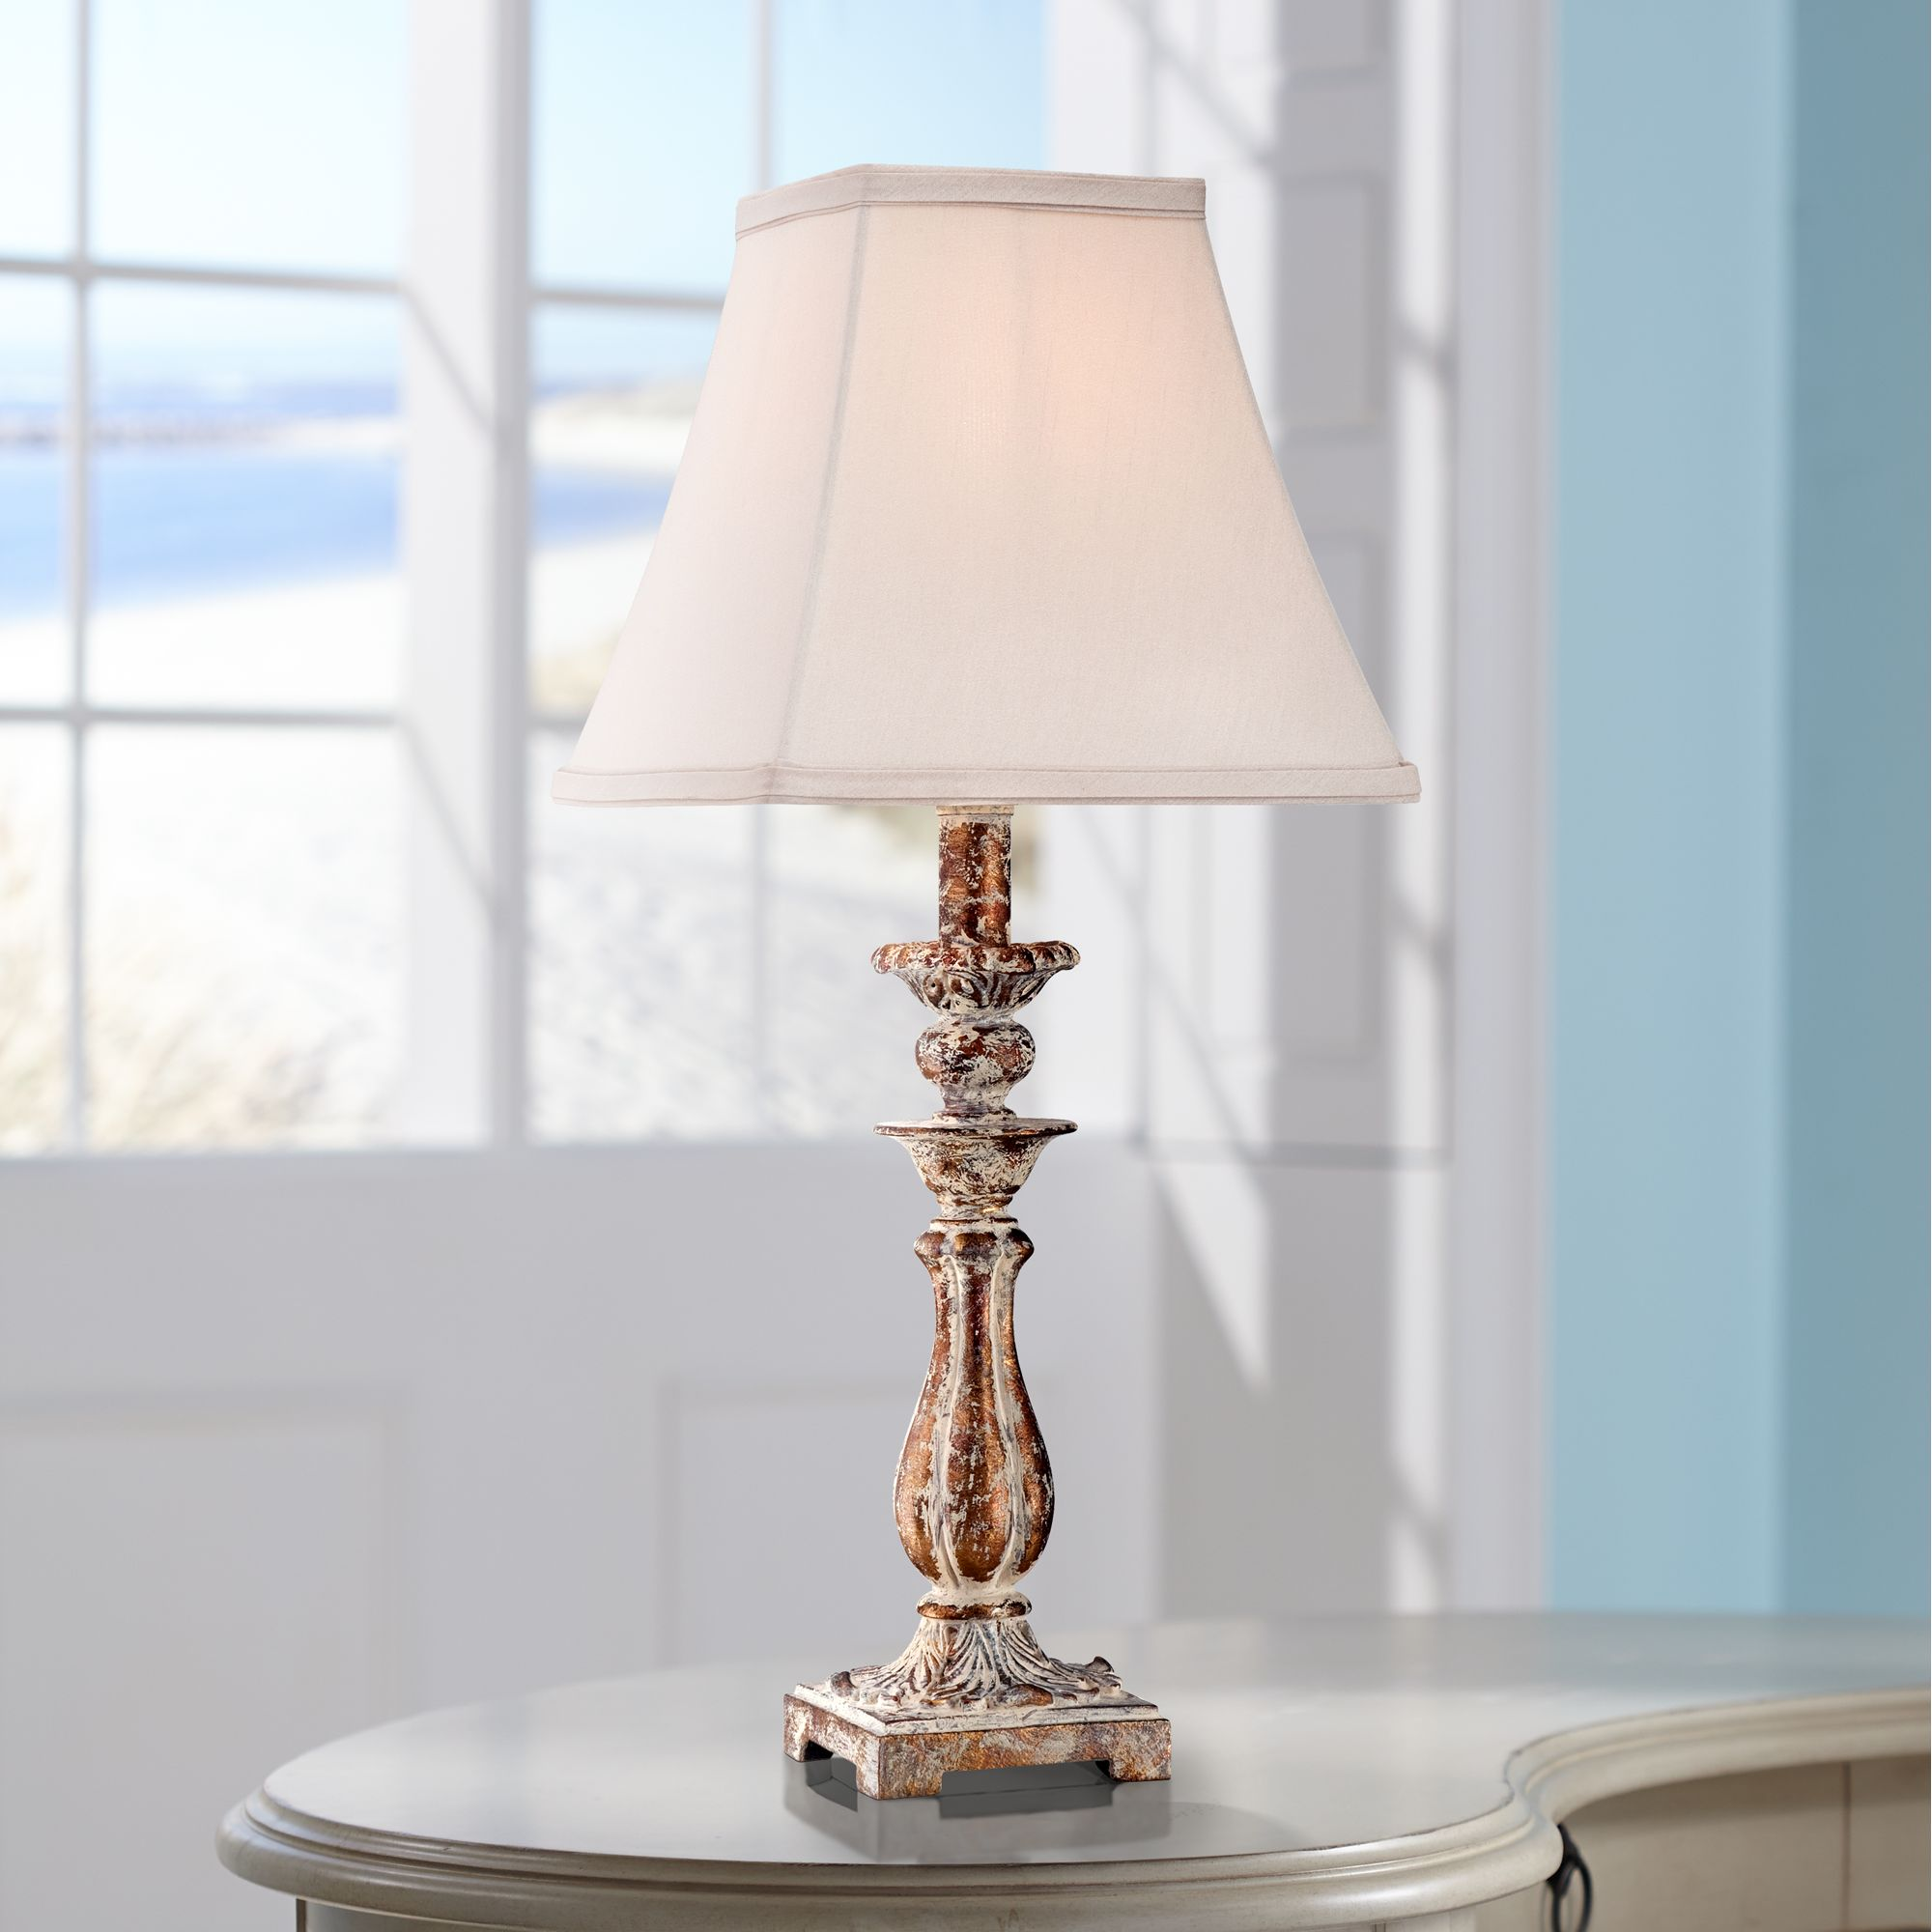 Distressed Lamps